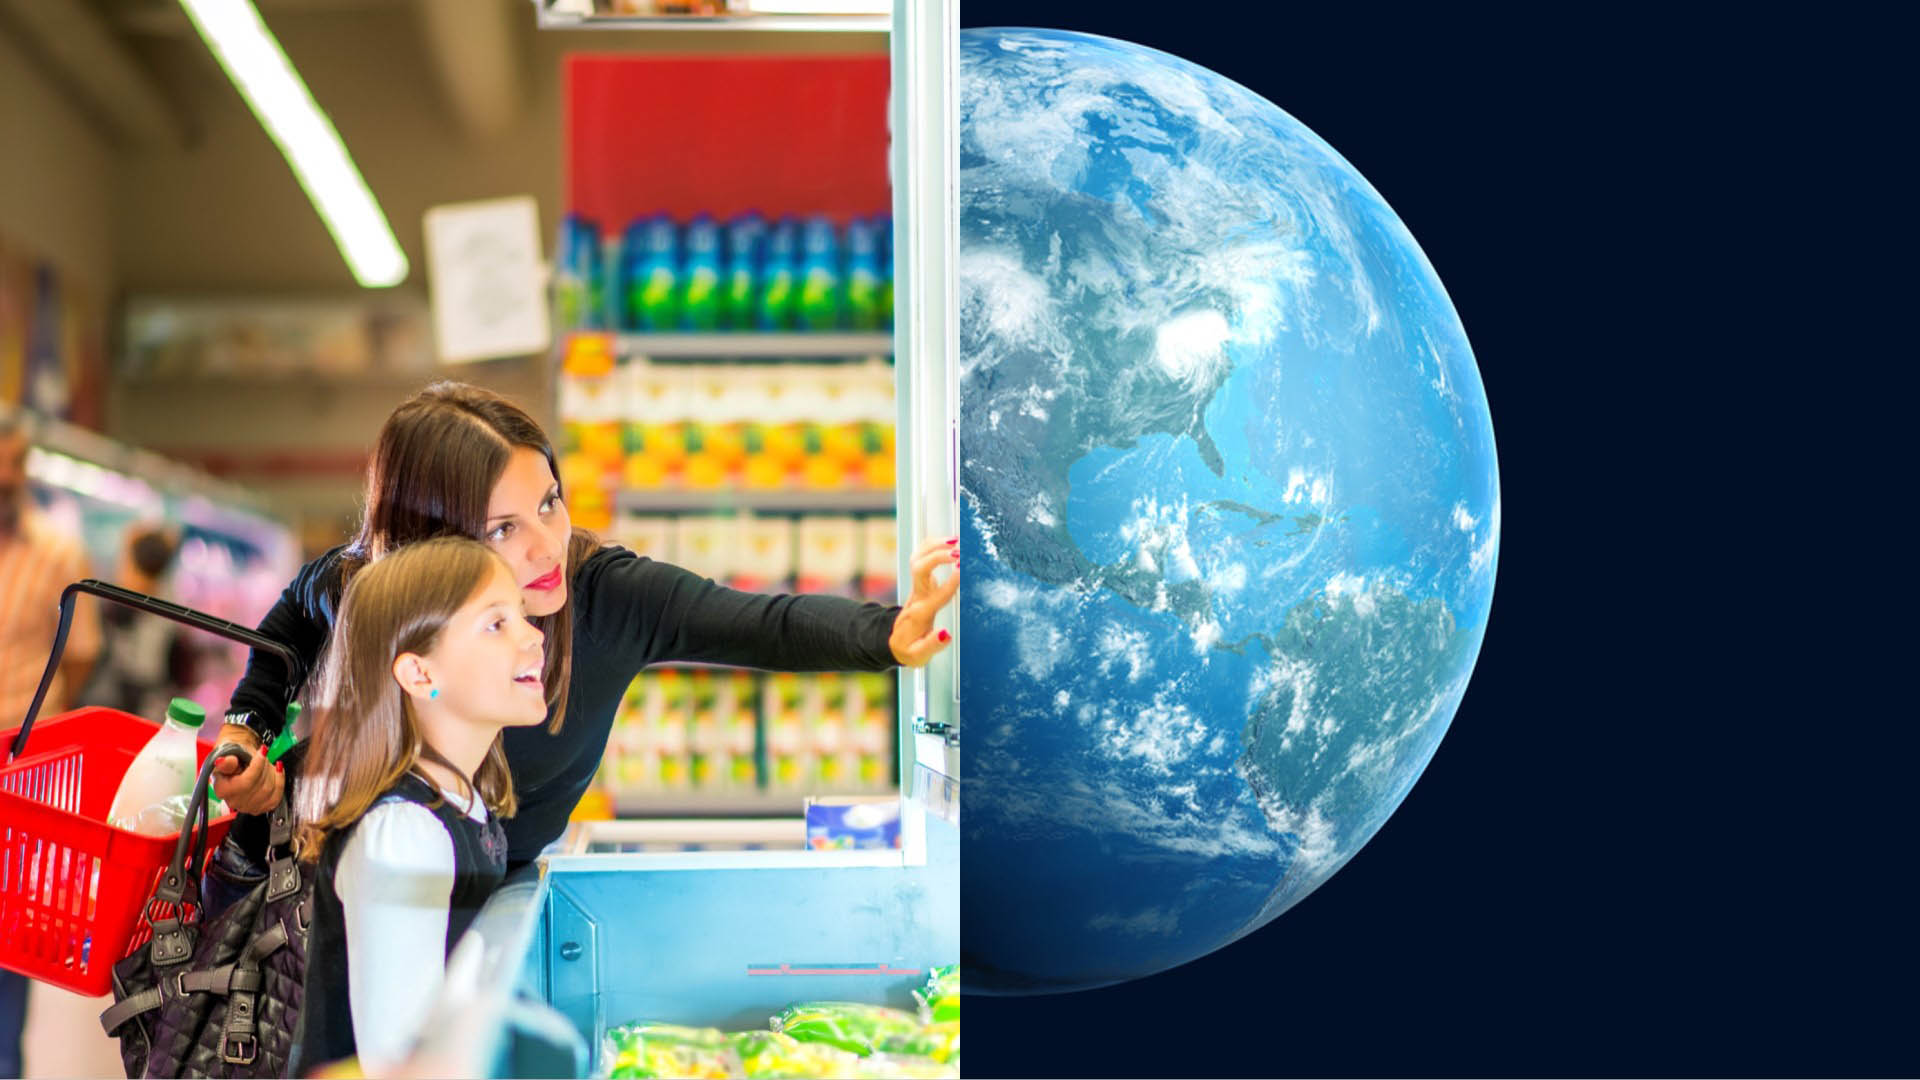 A split-screen image with a woman and young girl looking at freezer on left and the earth from space on right